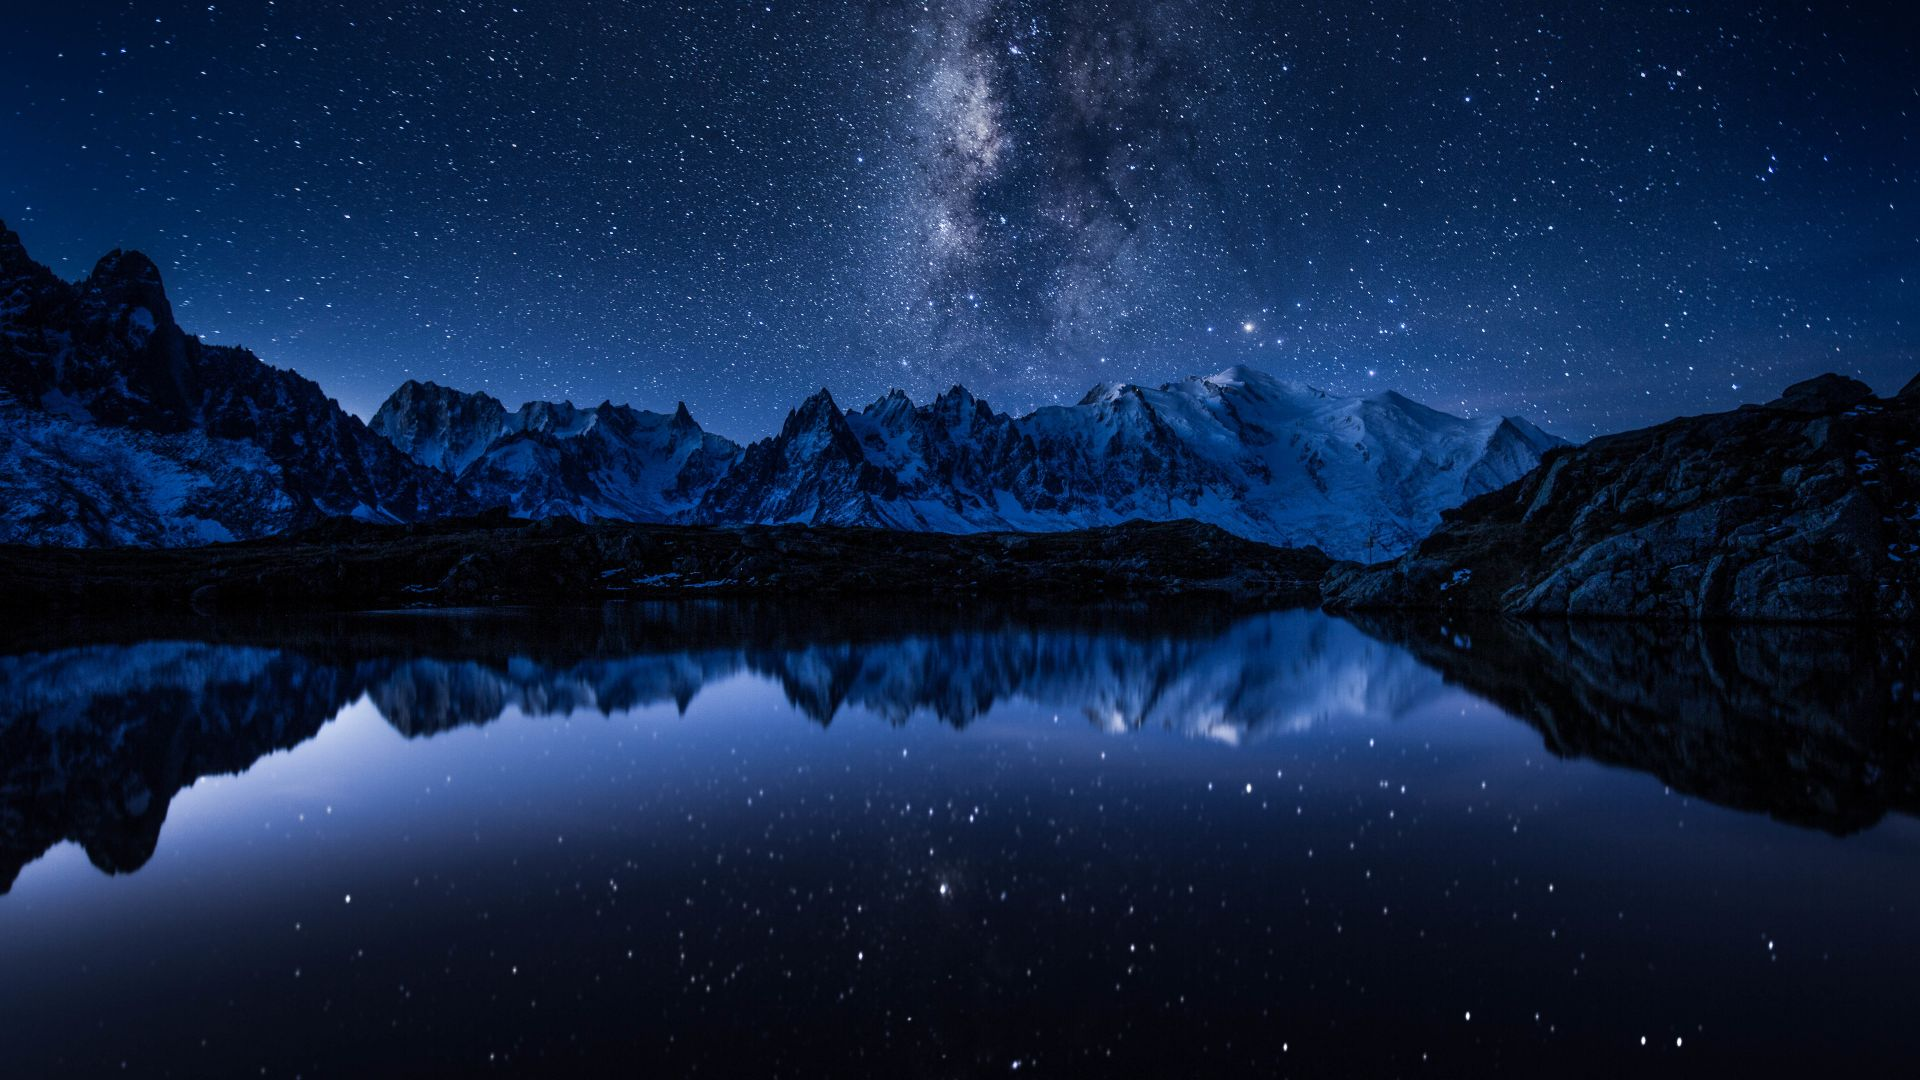 звезды, горы, stars, mountains, lake, 5k (horizontal)